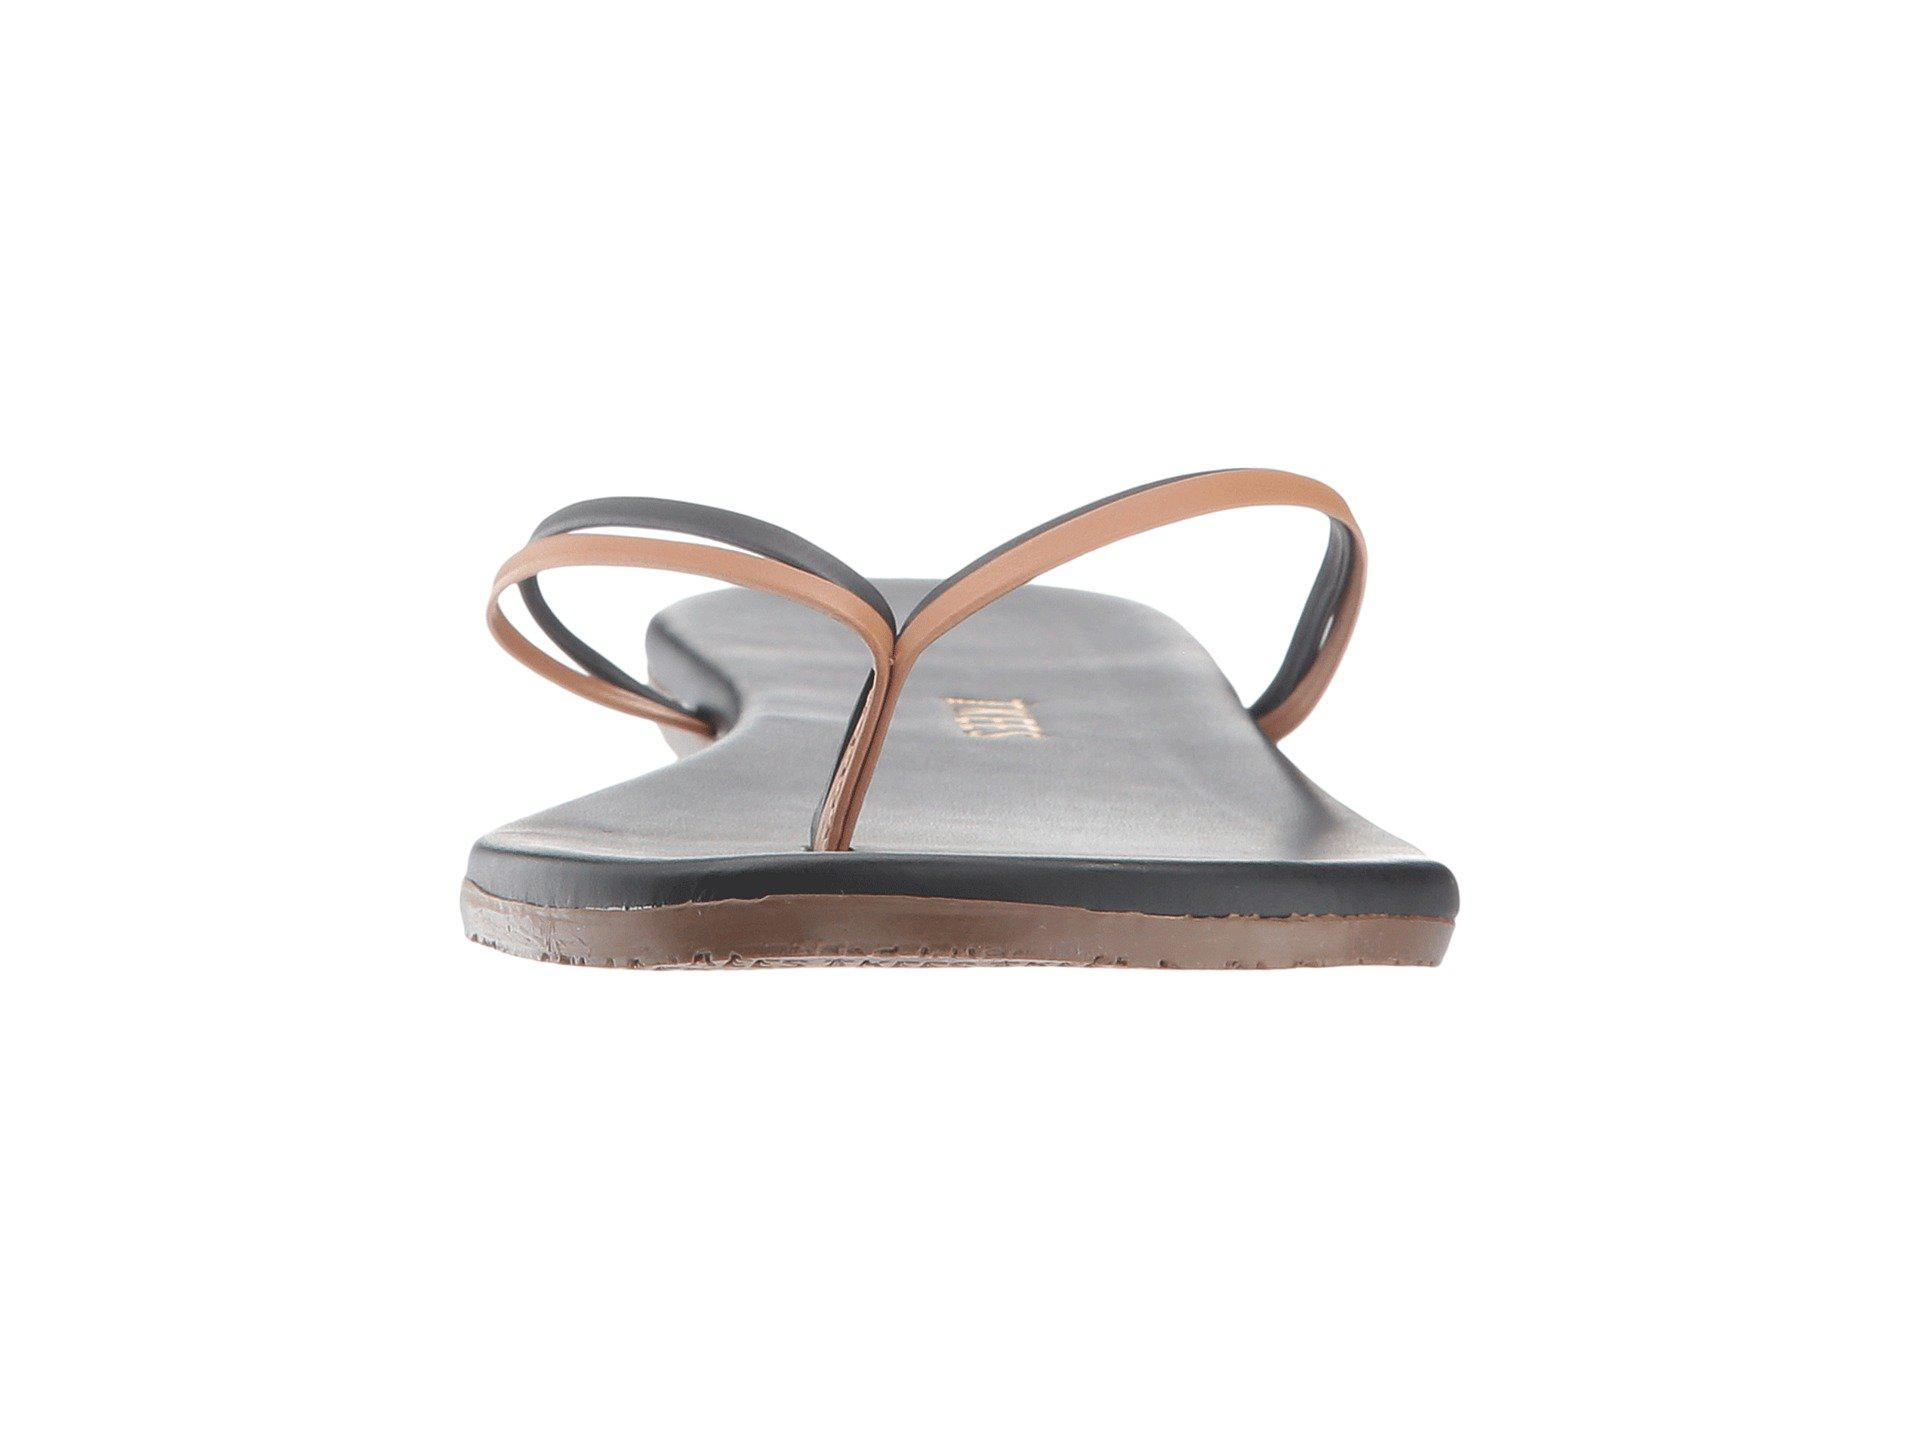 2b73b3bc1e0 TKEES - Multicolor Flip-flop-duos (brownie) Women s Toe Open Shoes -. View  fullscreen